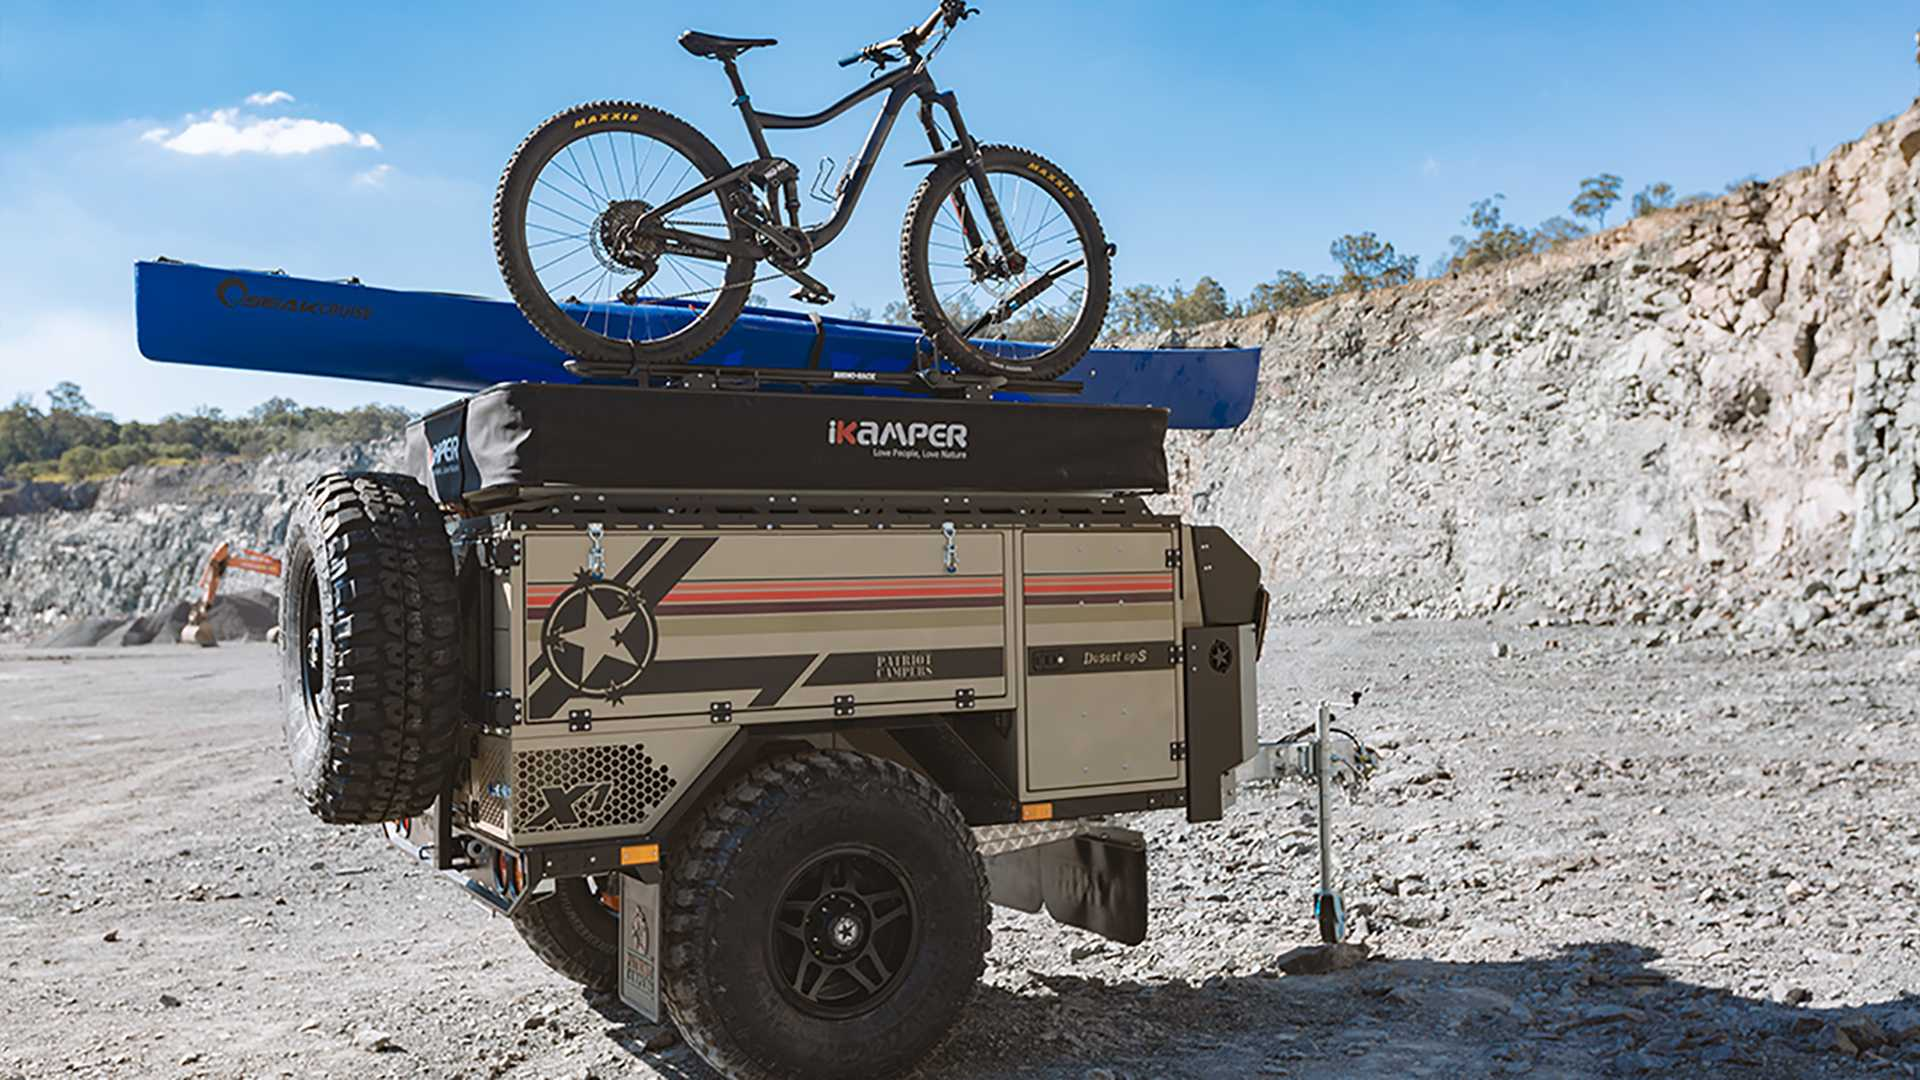 Army-Inspired Camper Trailer Can Fit Your Tent And Much More